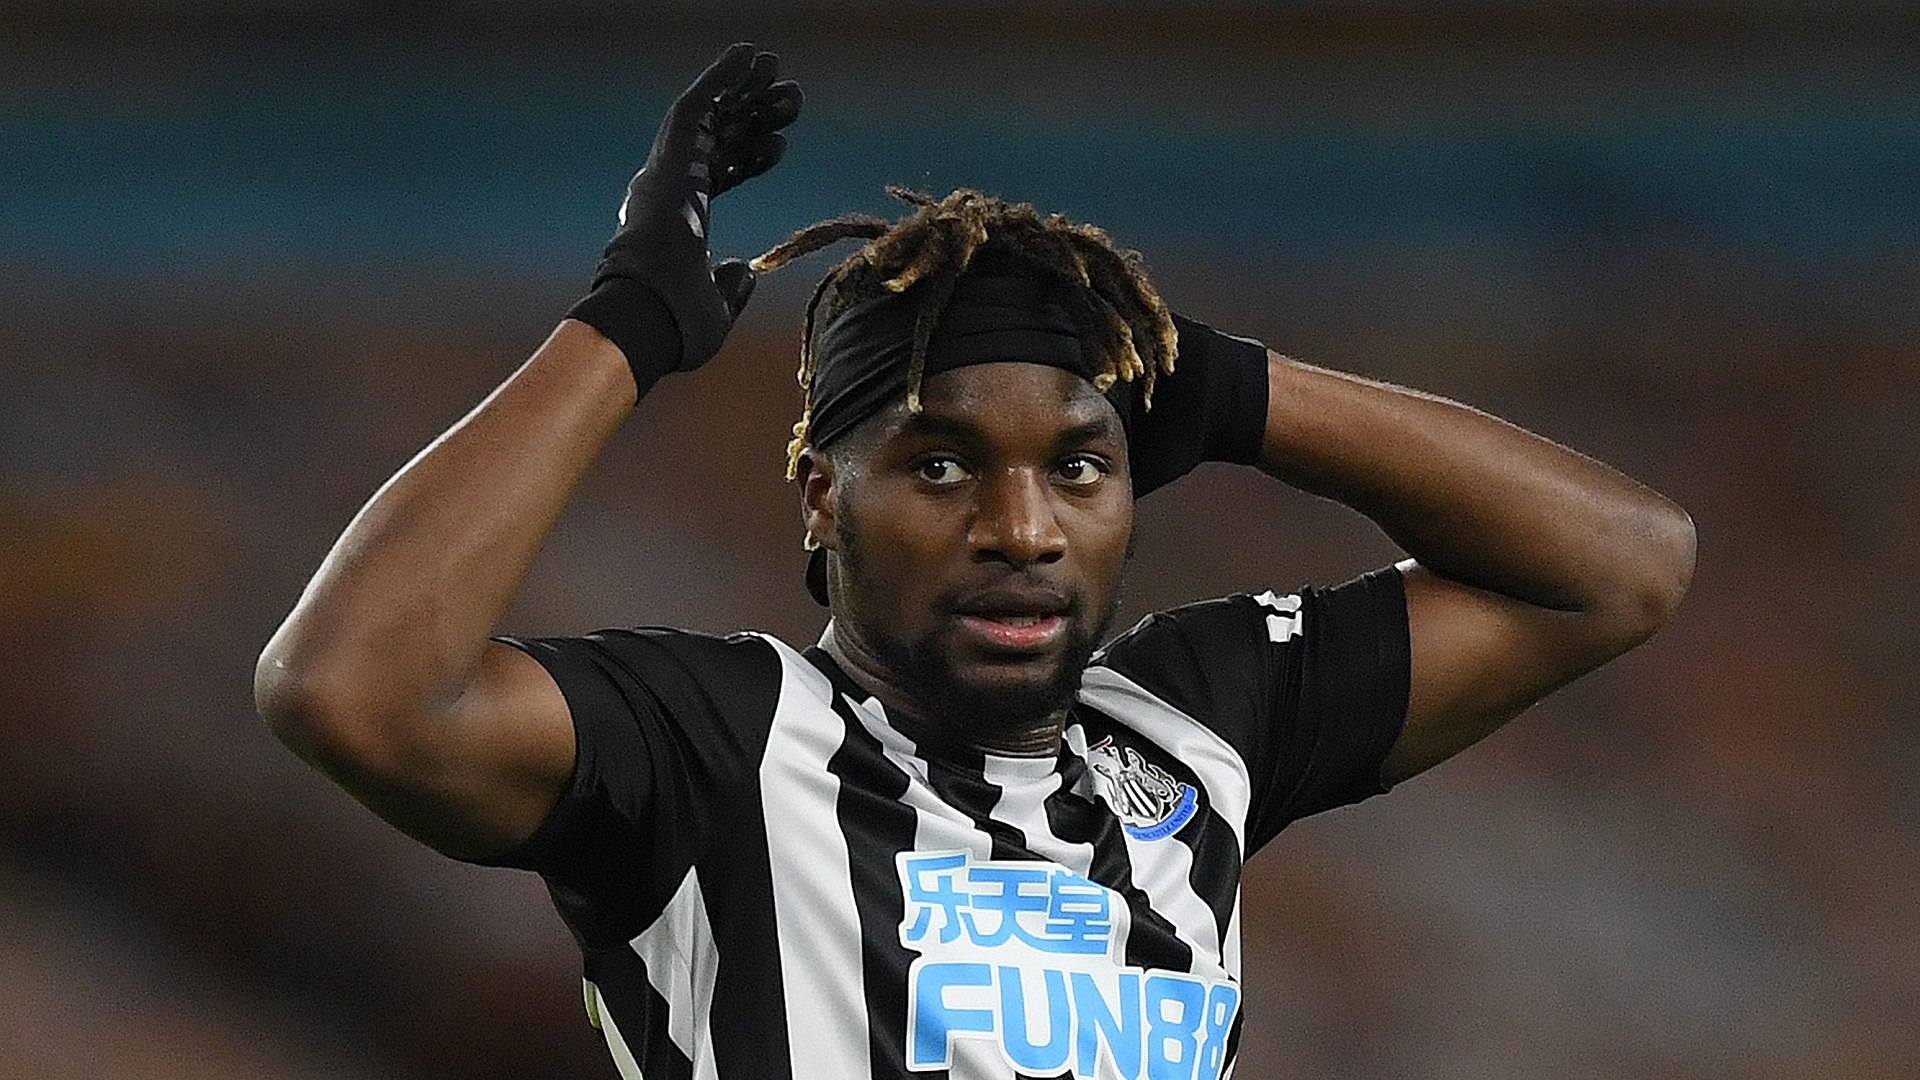 'I feel great!' - Saint-Maximin denies suffering lasting effects from Covid-19 & squashes talk of Bruce rift